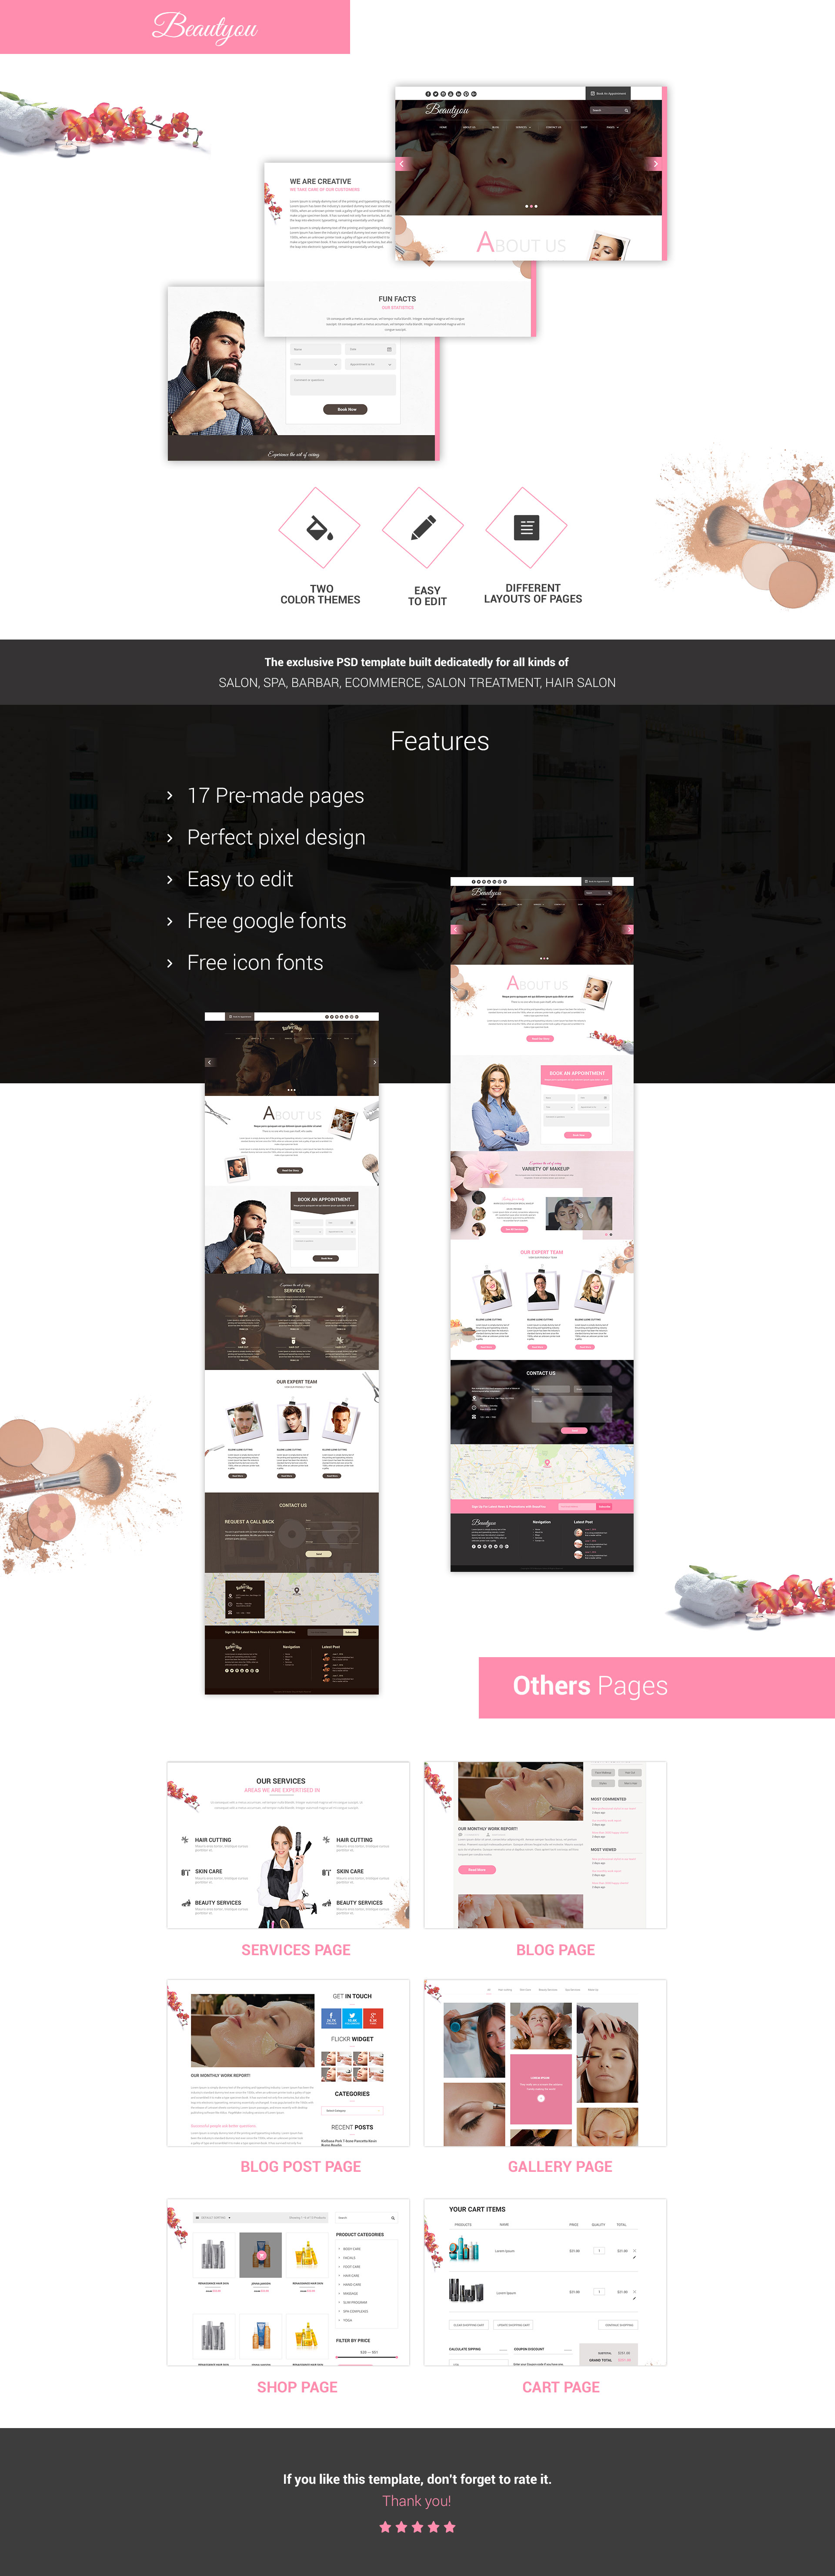 Beautyou - Beauty Salon Template